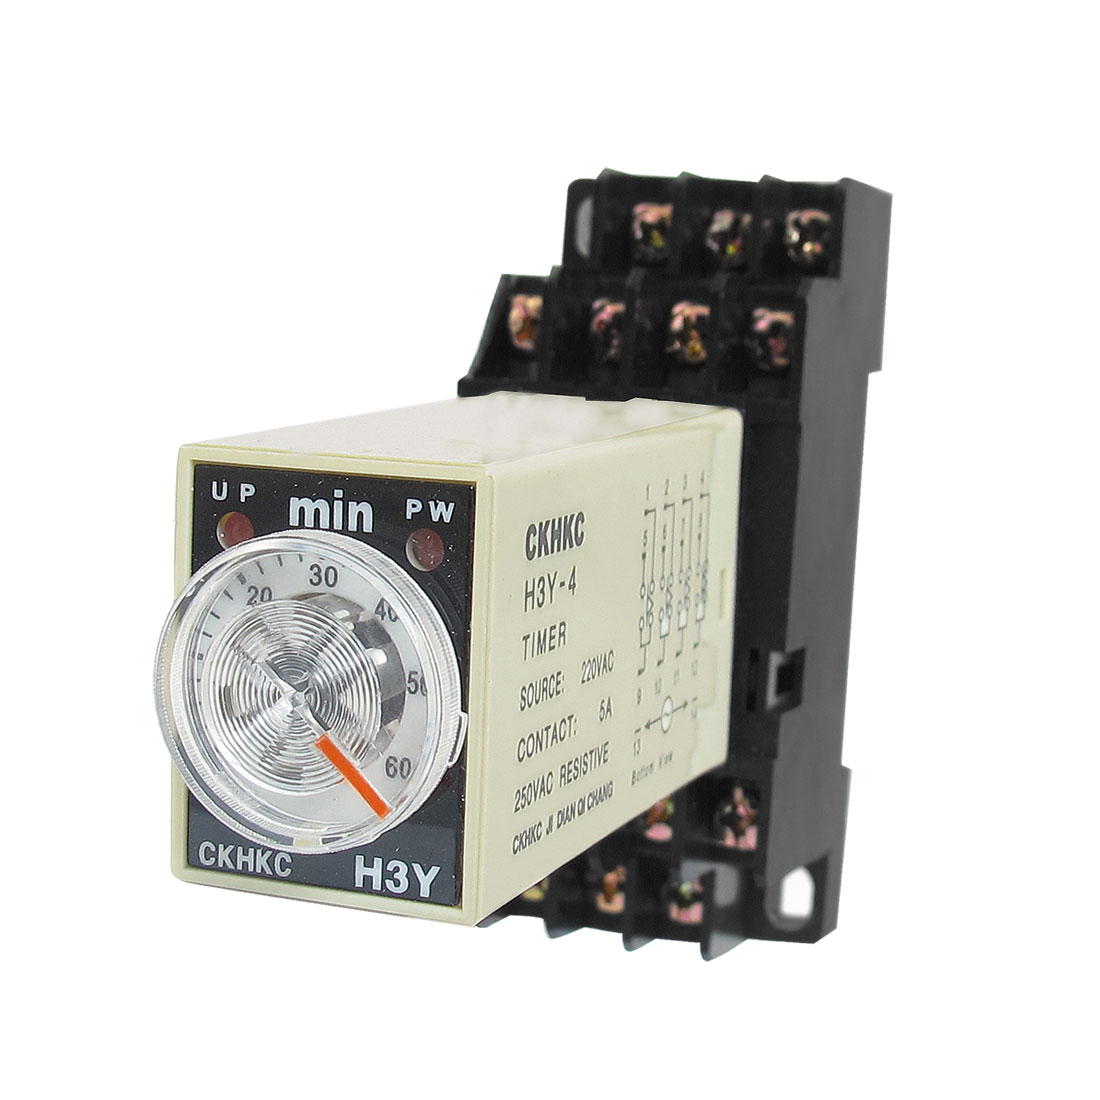 AC 220V H3Y-4 0-60 Minutes 4PDT 14 Pins Power on Time Delay Relay w Socket